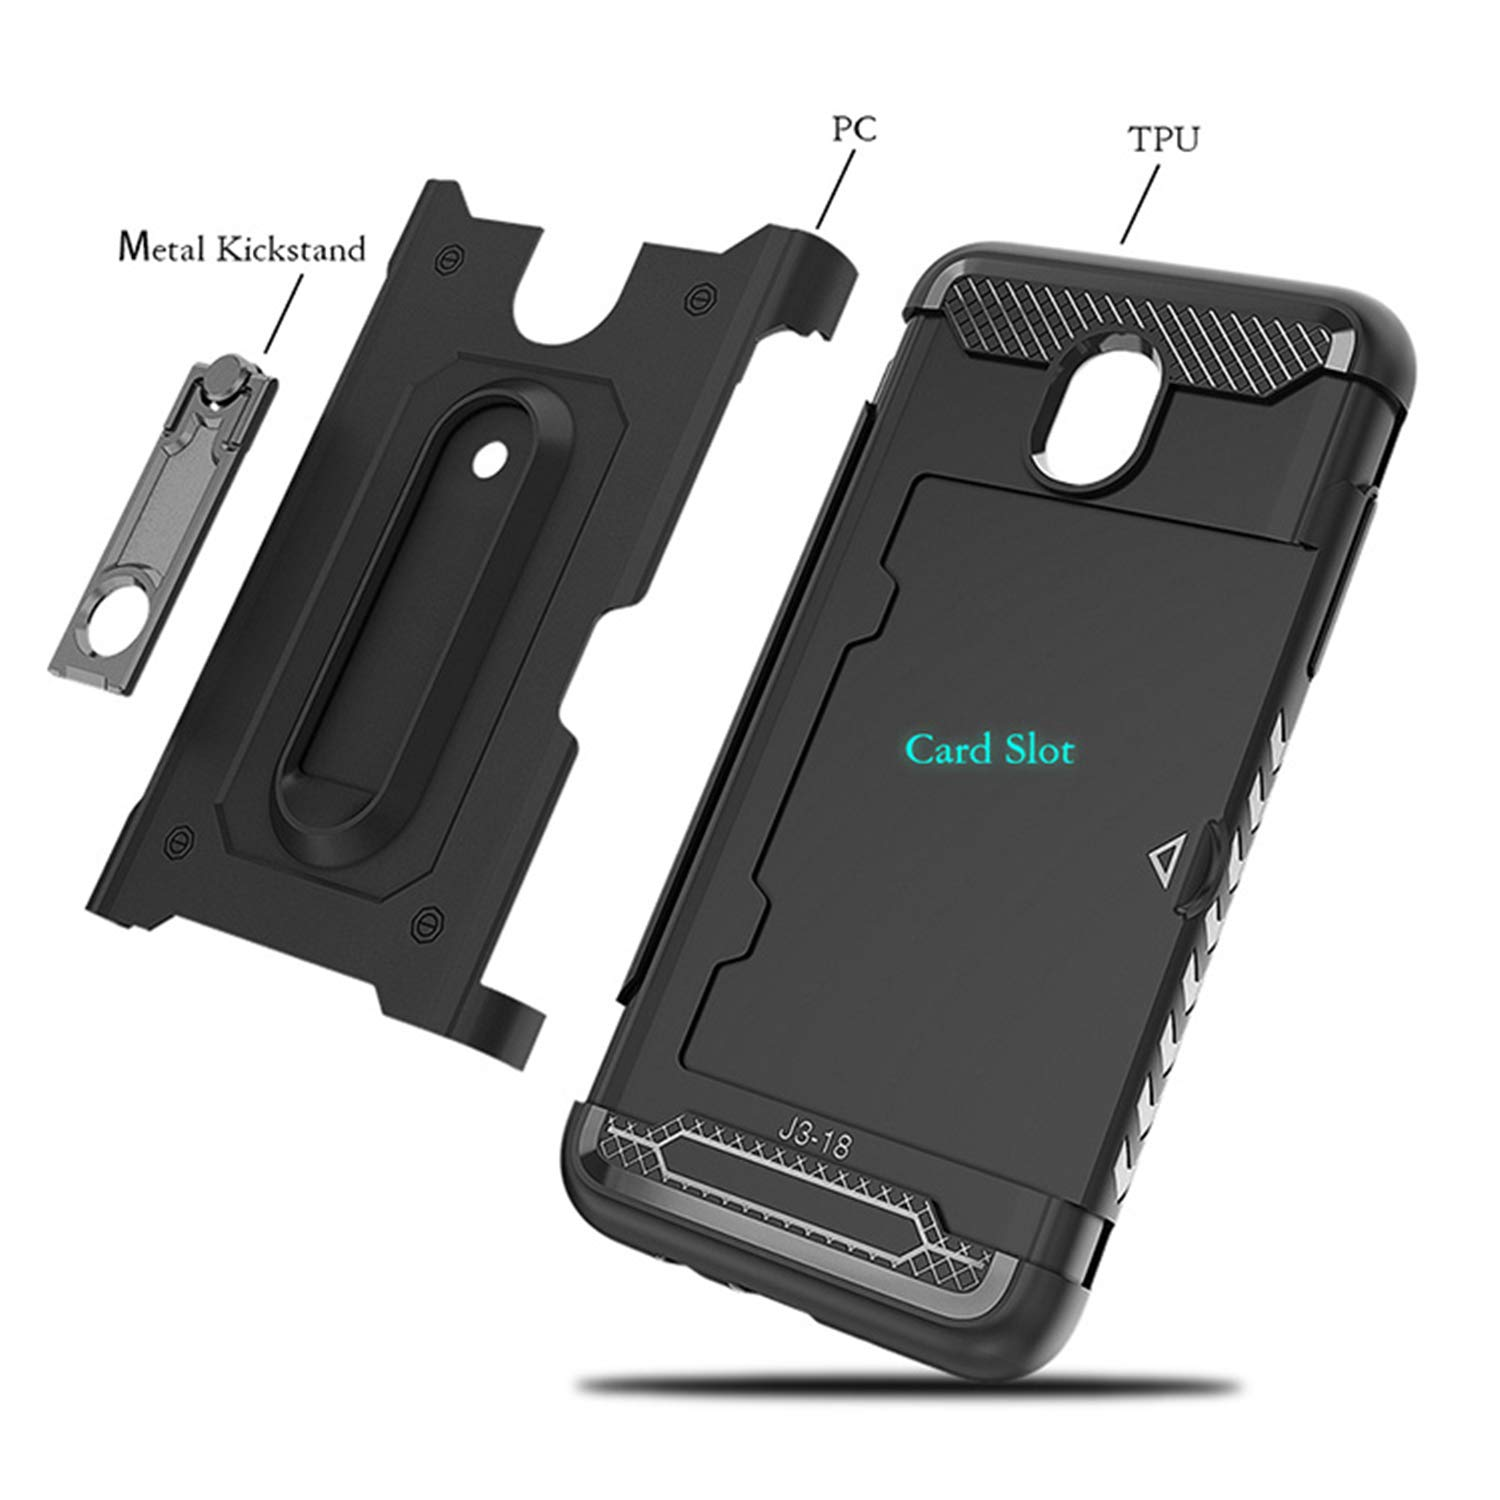 Card Slot Metal Stand Kickstand Dual Layer Shock Protective with Rugged Hard Shell Skin Soft TPU Rubber Hybrid Tough Bumper Armor Case for J3 2018-black DAMONDY J3 Star,J3 2018 Case,J3 Achieve